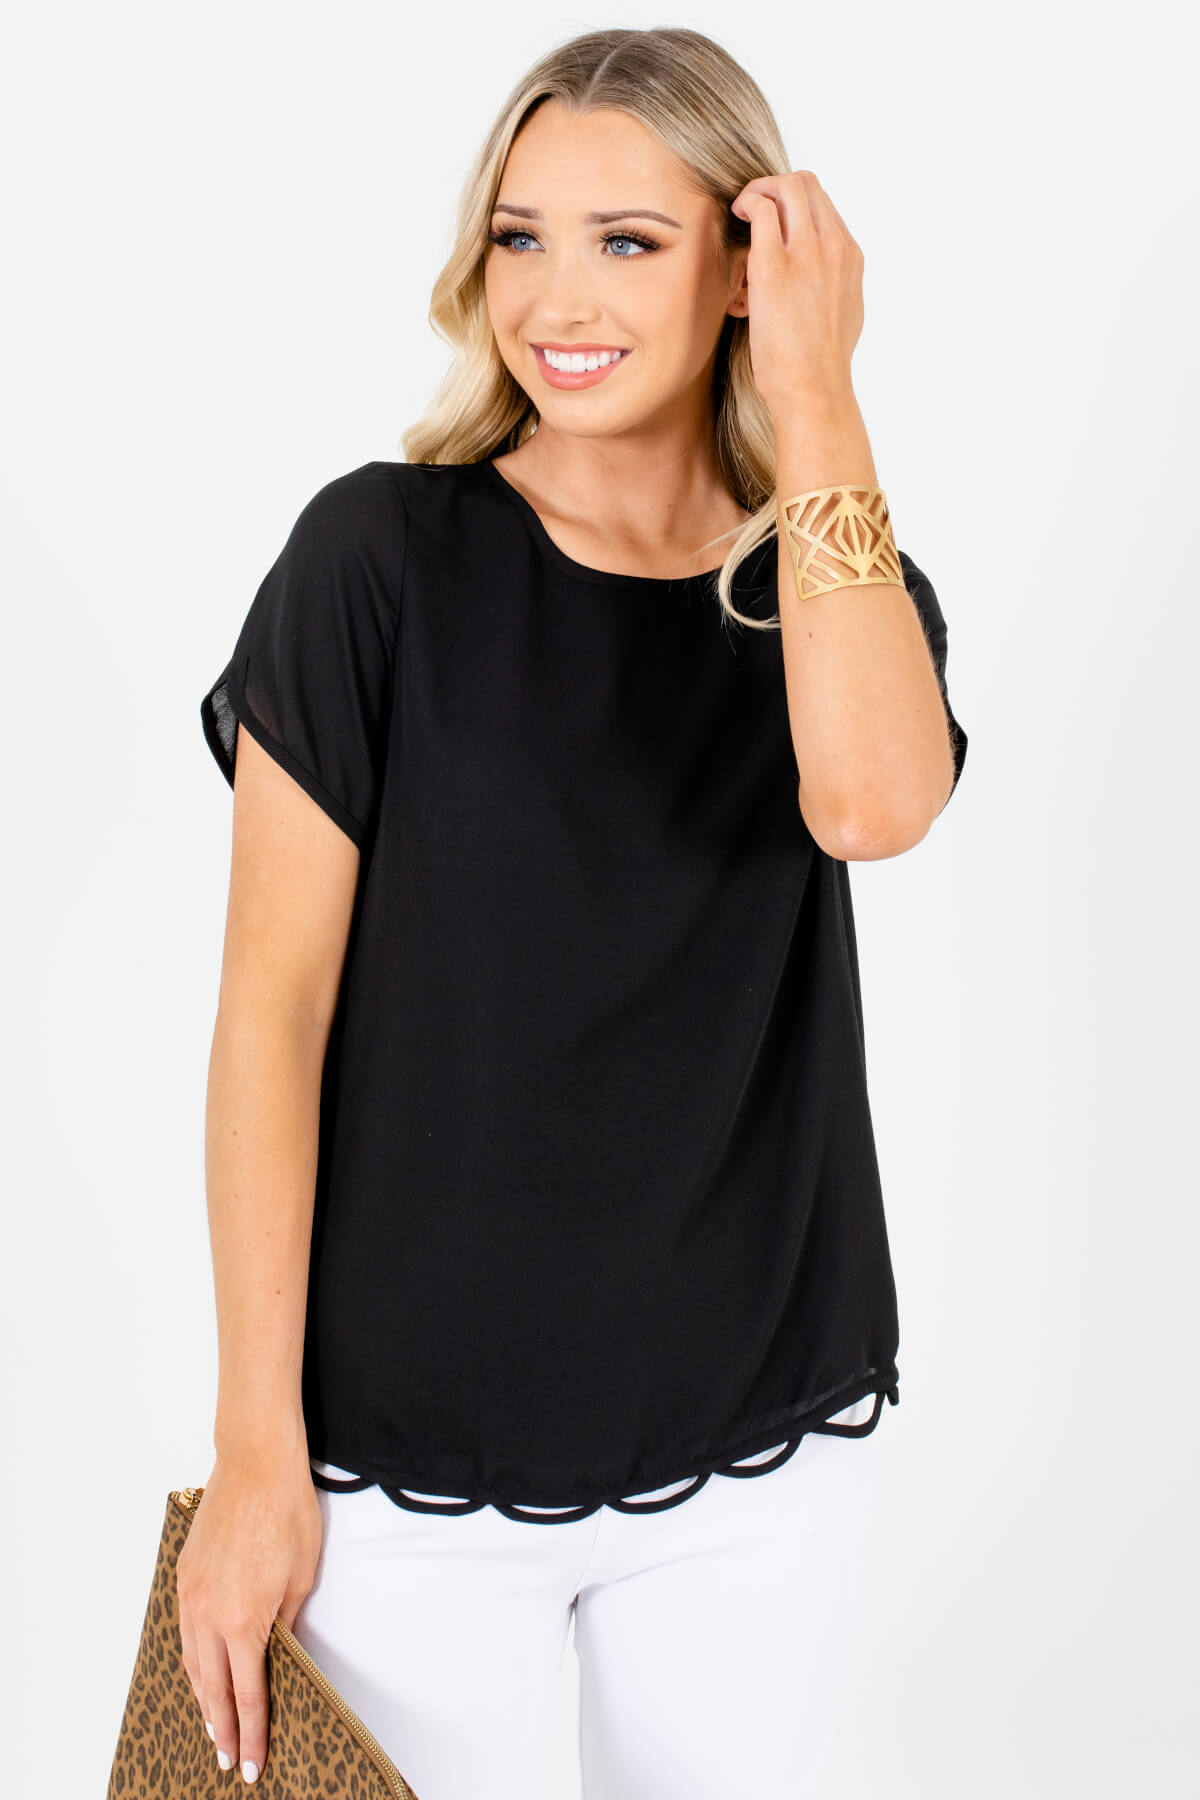 Black Scalloped Hem Boutique Blouses for Women